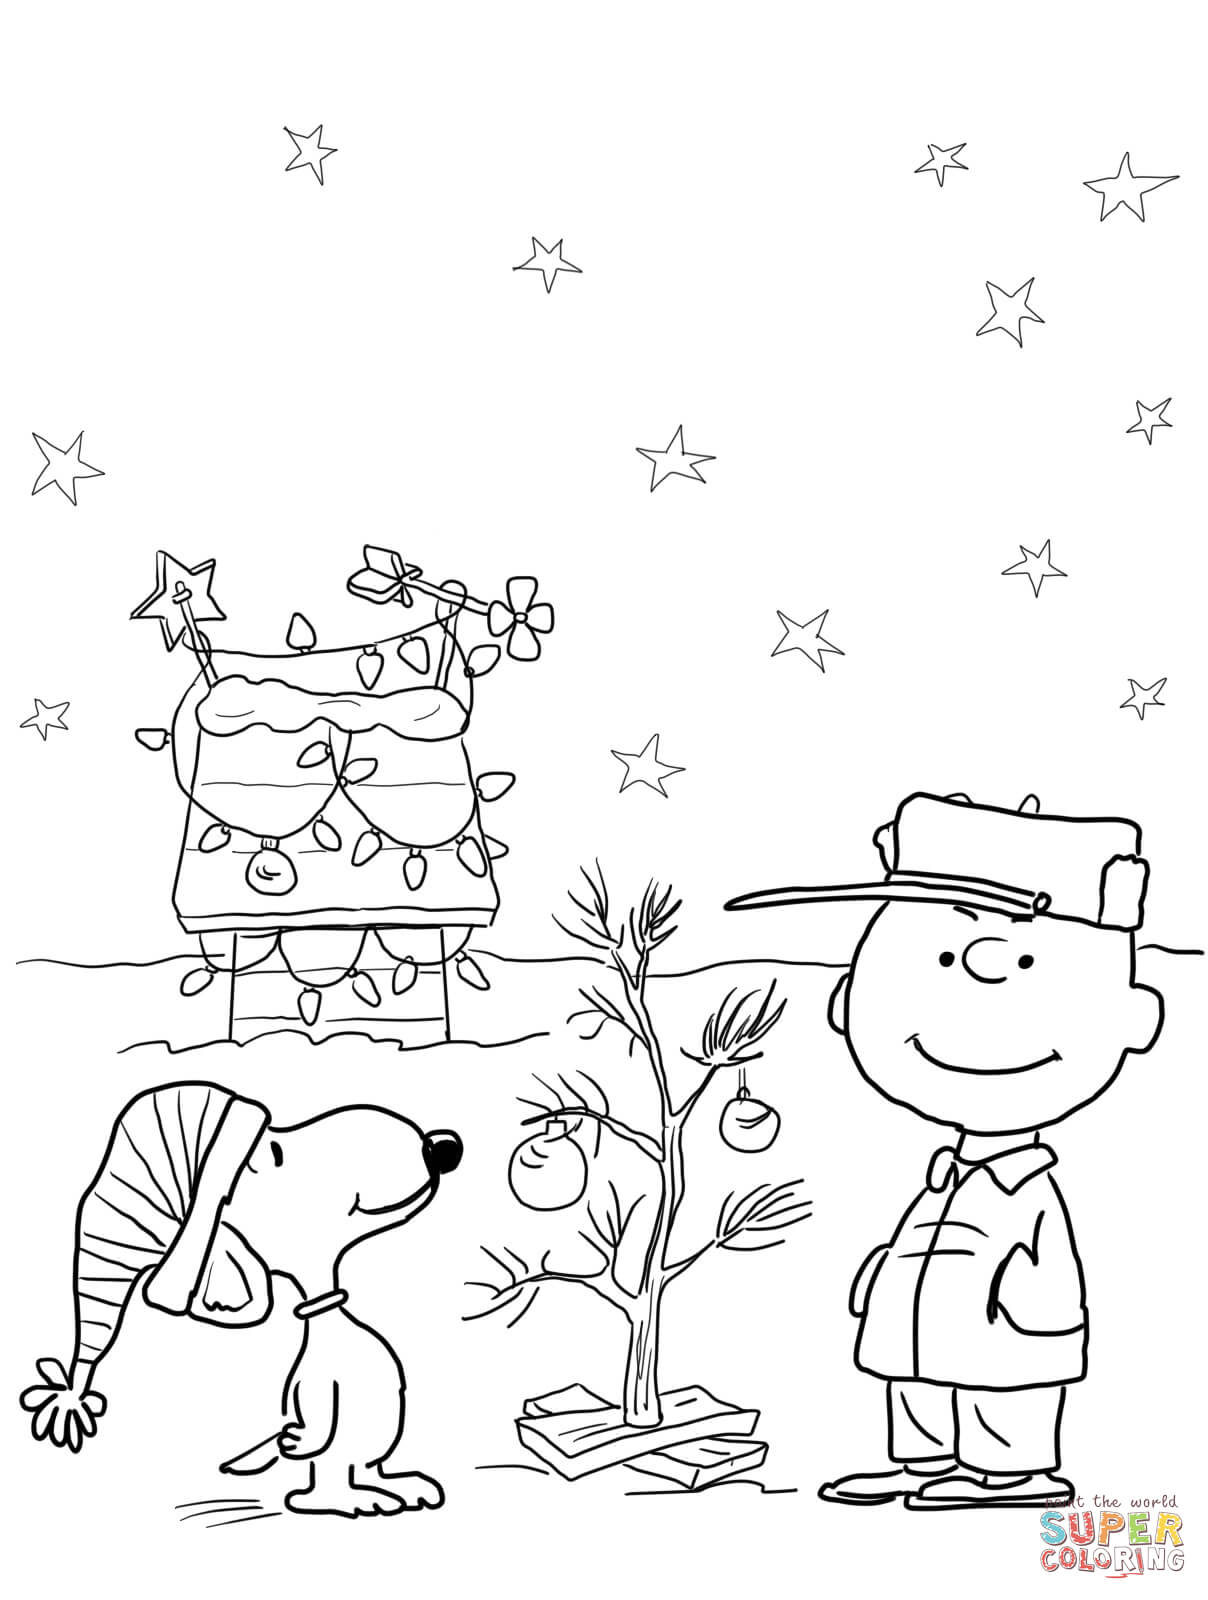 Christmas Coloring Free With Charlie Brown Page Printable Pages